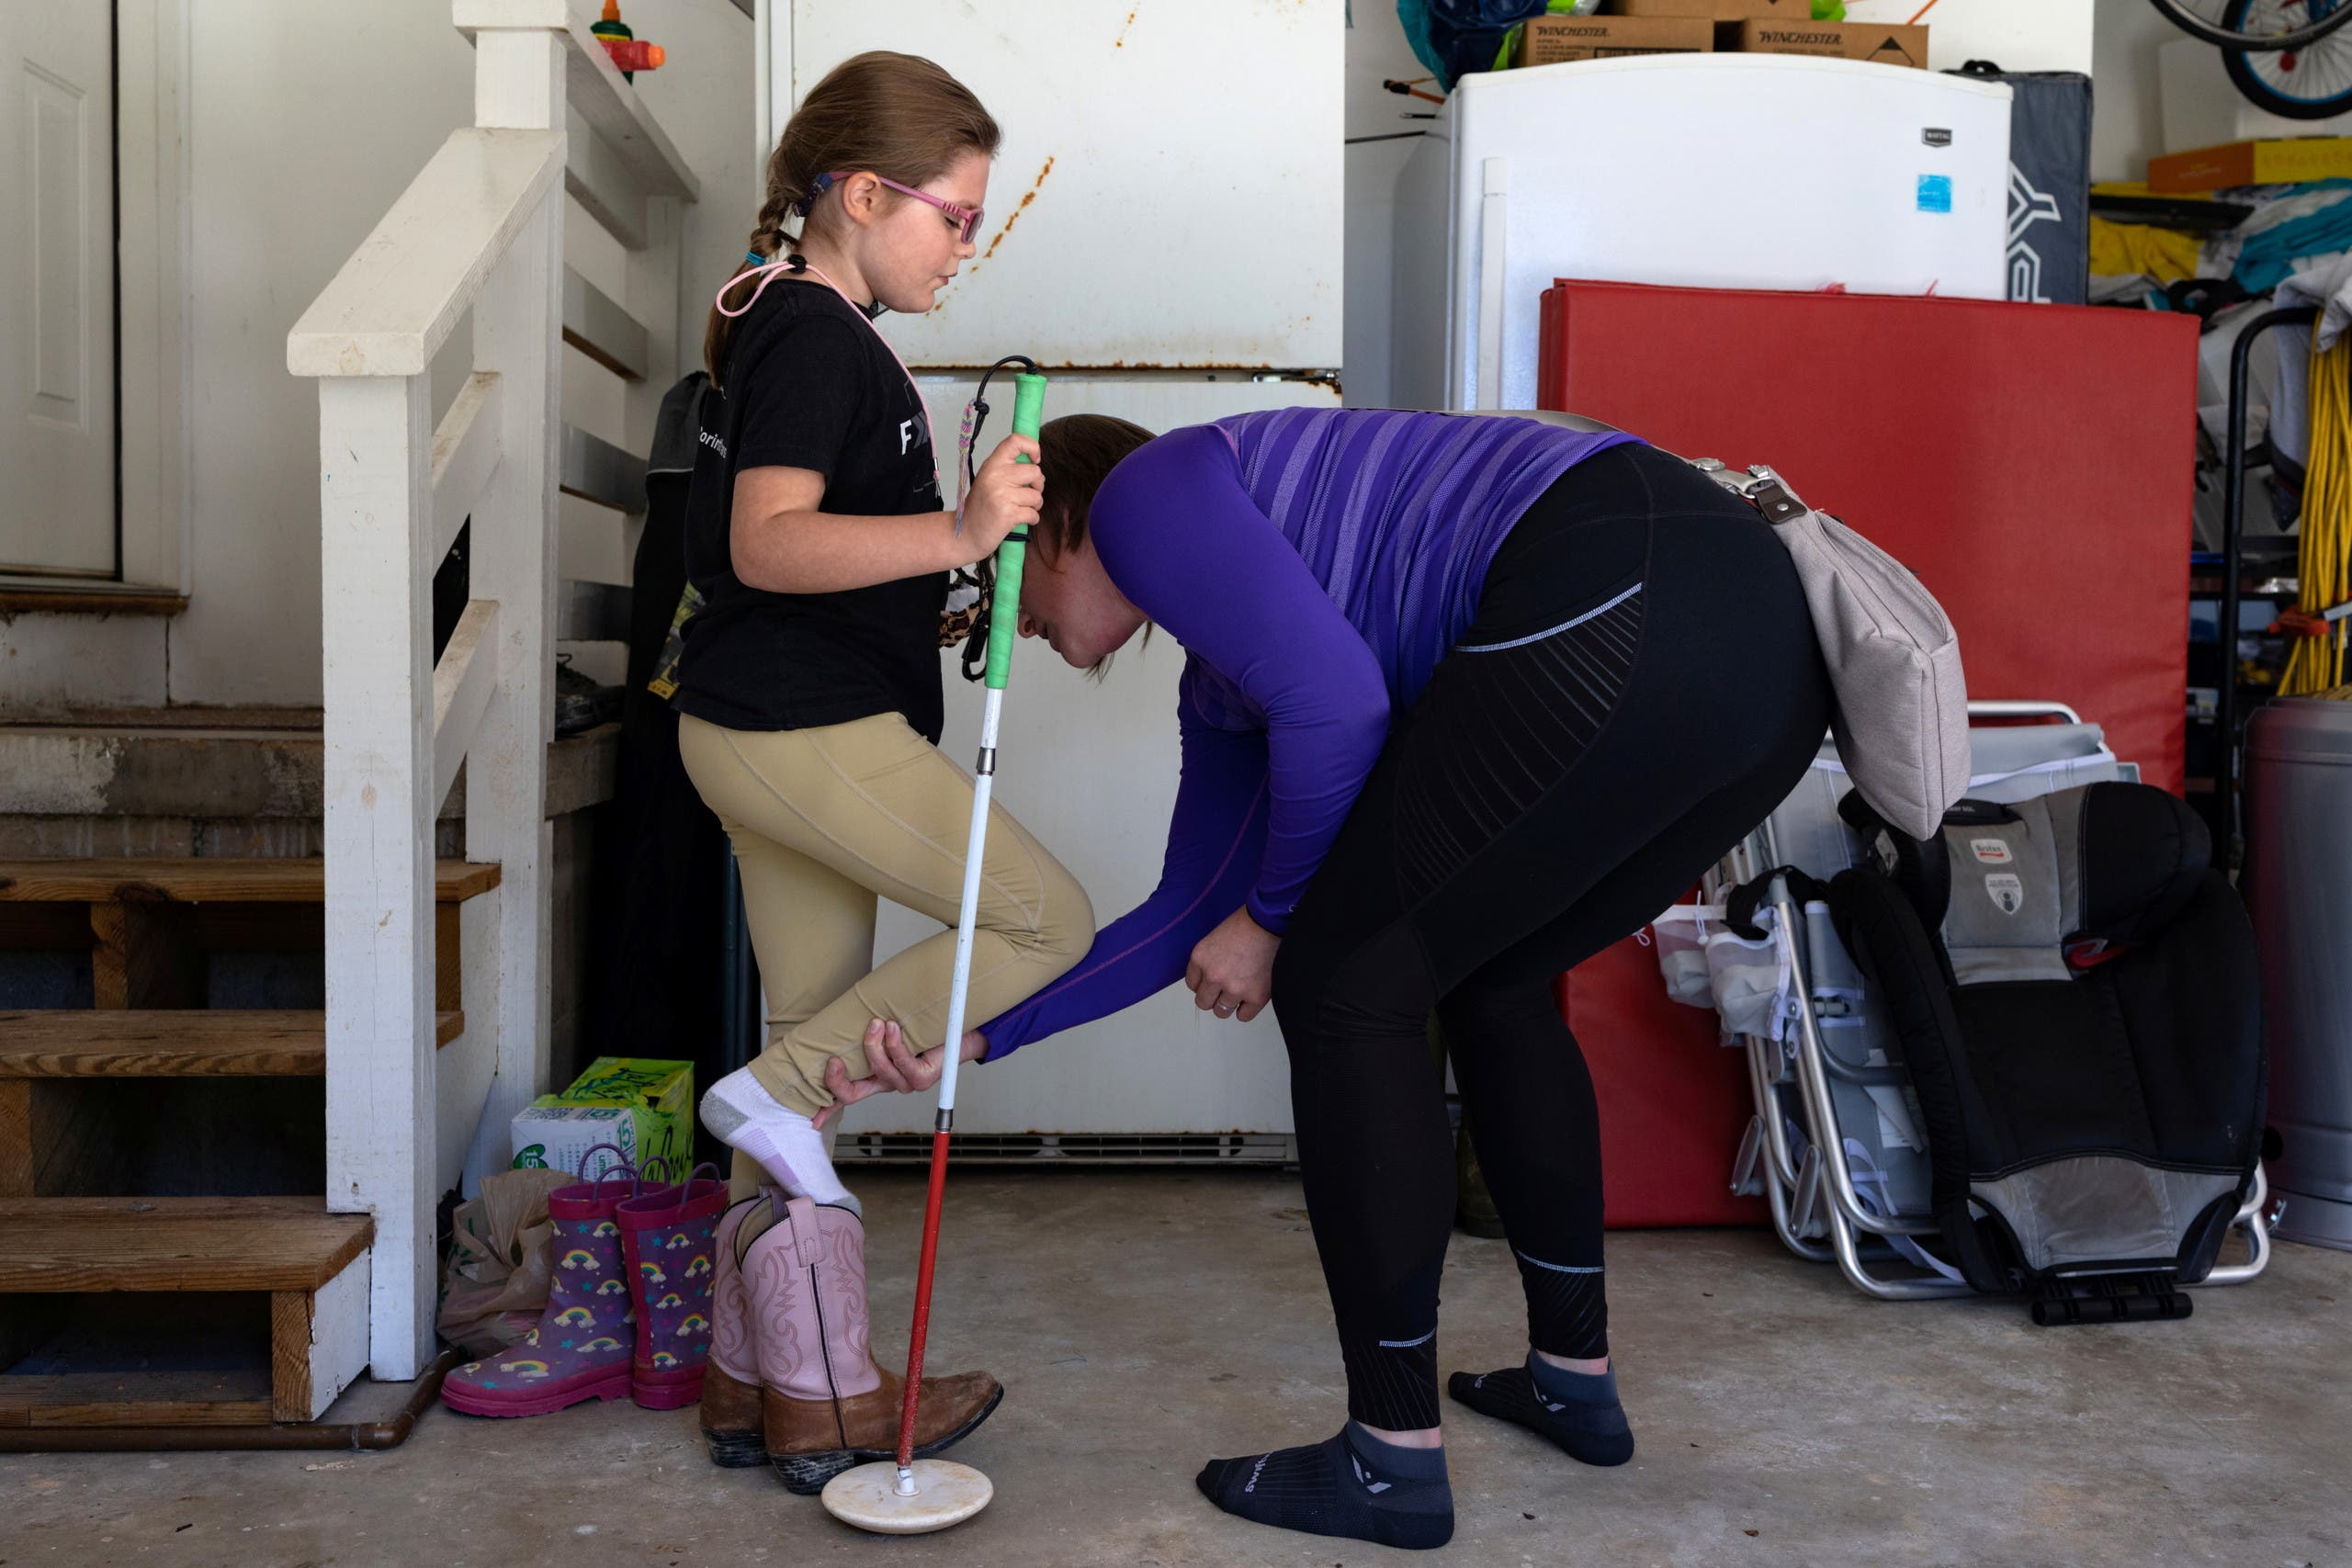 Anne Martha Corley helps her daughter, Ella Rose Corley, 8, who contracted an infection in early childhood that left her legally blind, put on her shoes in Vestavia Hills, Alabama, U.S., September 25, 2021. Picture taken September 25, 2021. REUTERS/Hannah Beier